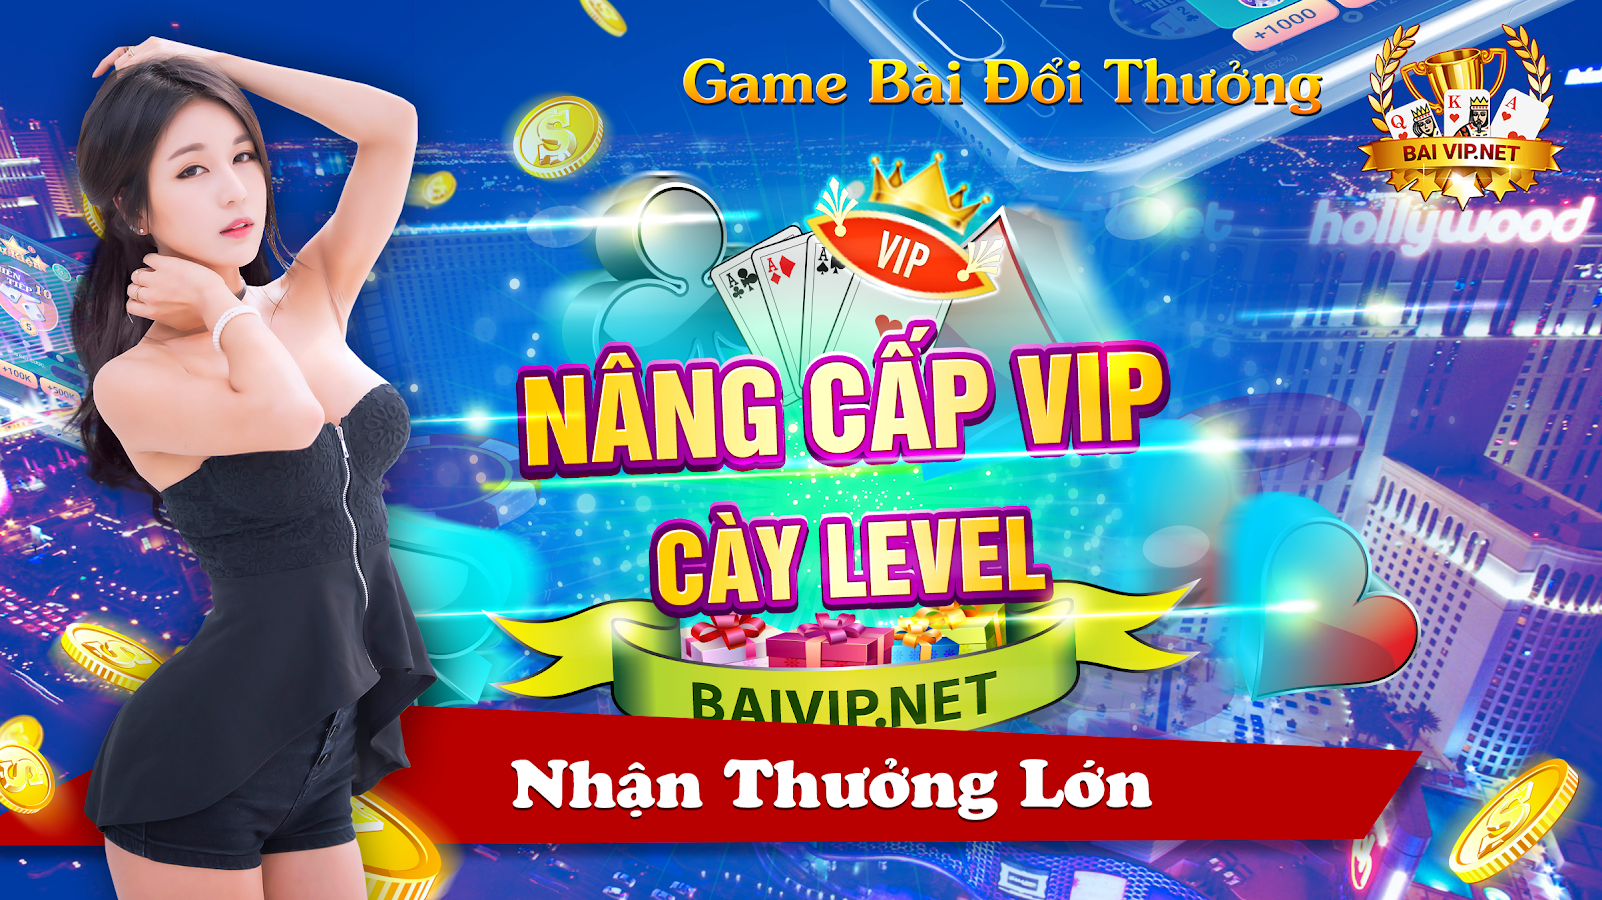 Game Bài Vip Online Screenshot 7